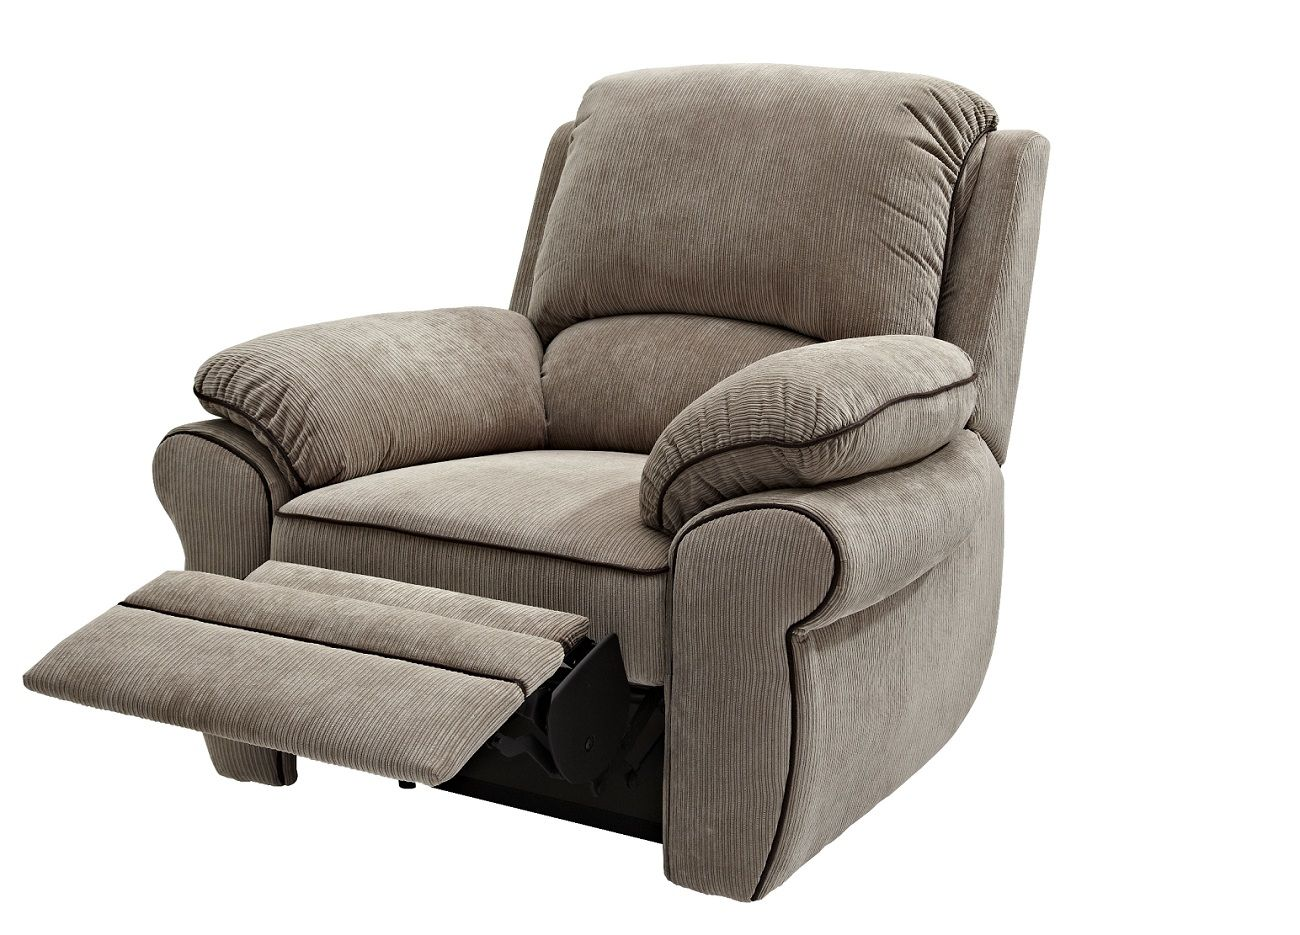 Superieur Unique Gift Ideas For Dad  Best Fatheru0027s Day Gifts 2017. Ideas For Fatheru0027s  DayRecliner ChairsChair FabricLiving ...